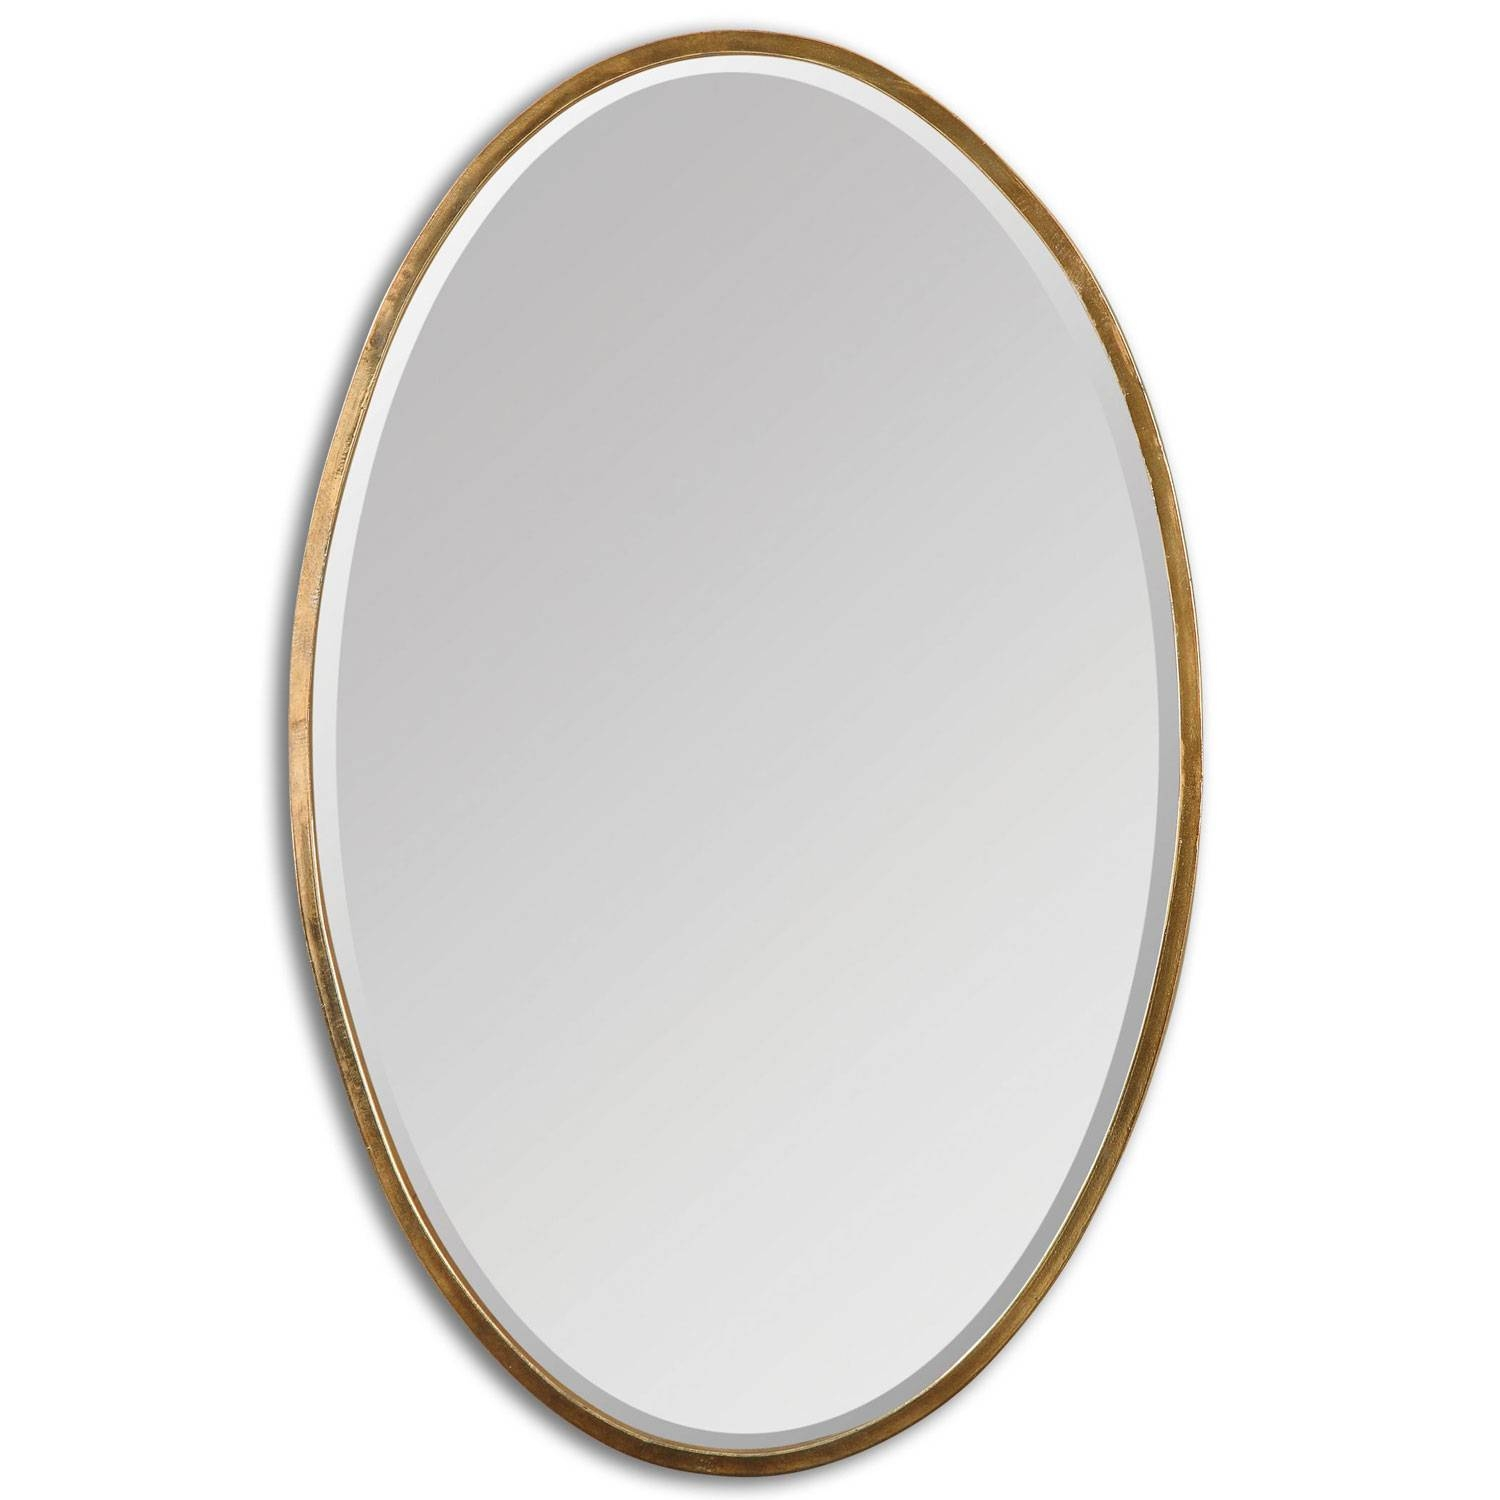 Herleva Oval Antique Gold Oval Mirror Uttermost Wall Mirror intended for Gold Round Mirrors (Image 11 of 25)